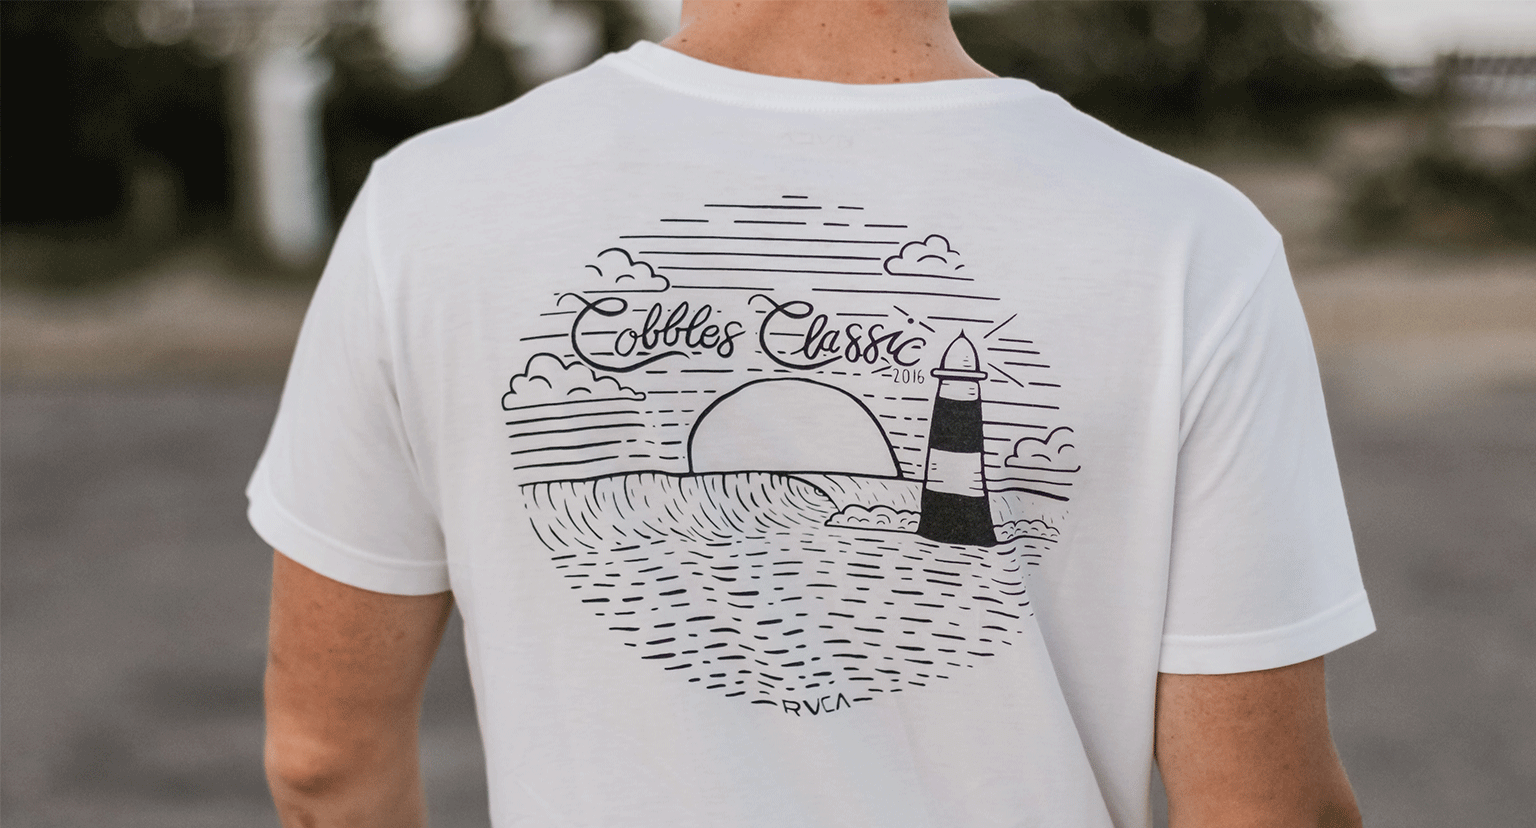 how to t shirt design_how to make t shirt design_design for t shirt printing_how to create t shirt design_how to design t shirt online_t shirt design and print_how to make t shirt designs_how to create t shirt designs